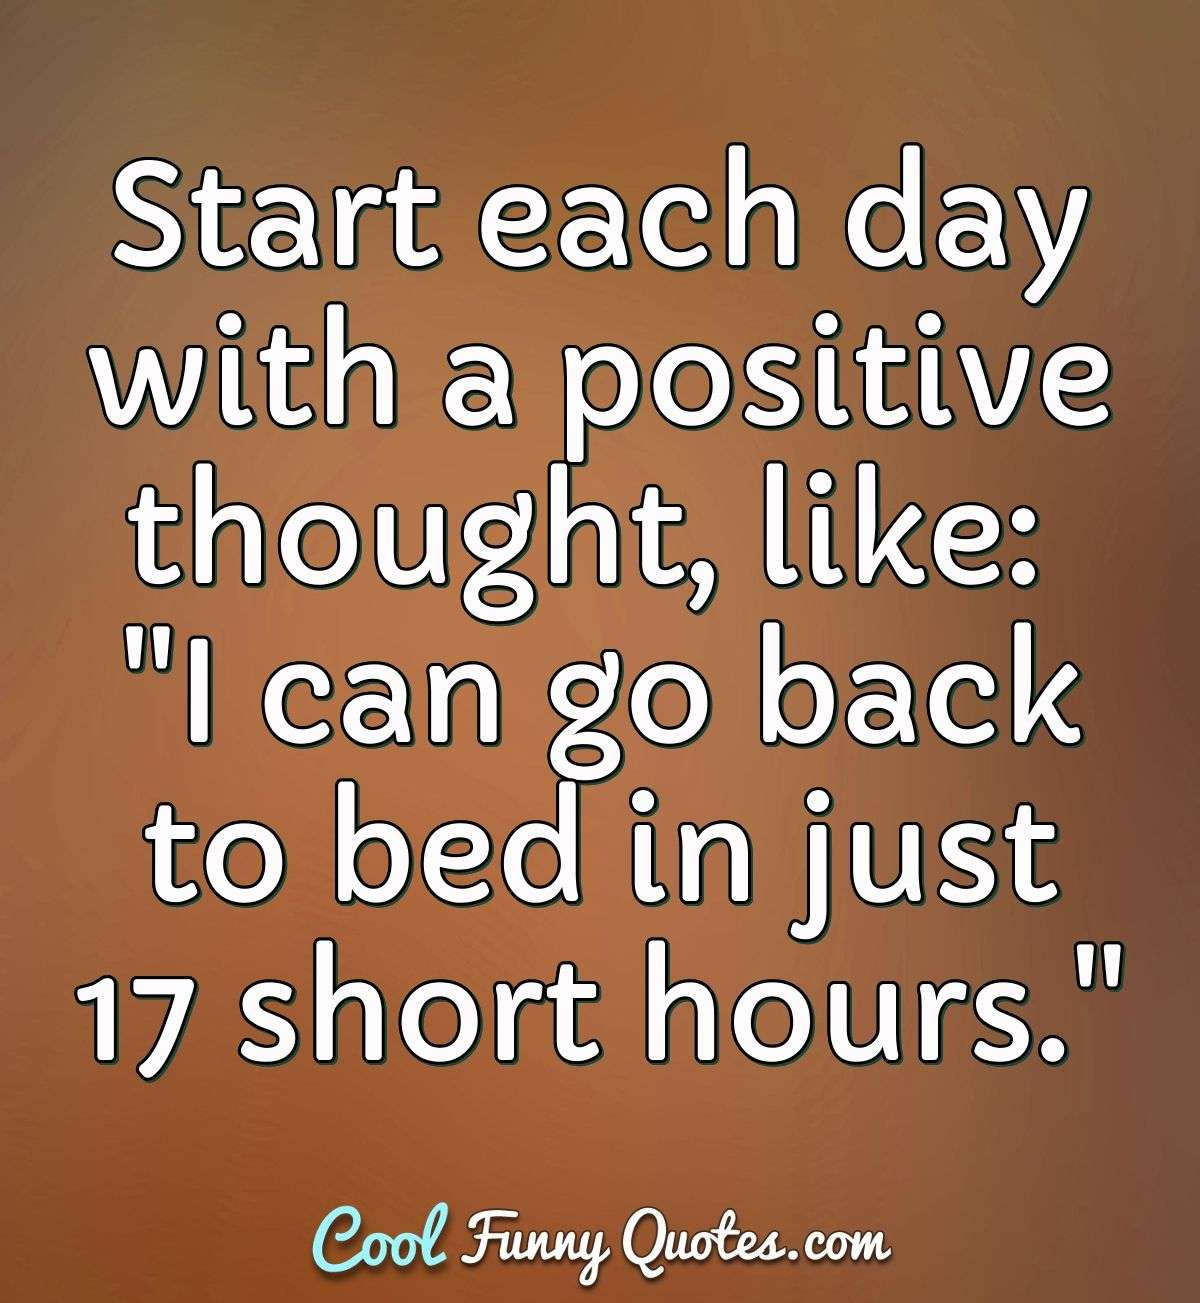 "Start each day with a positive thought, like: ""I can go back to bed in just 17 short hours."" - Anonymous"